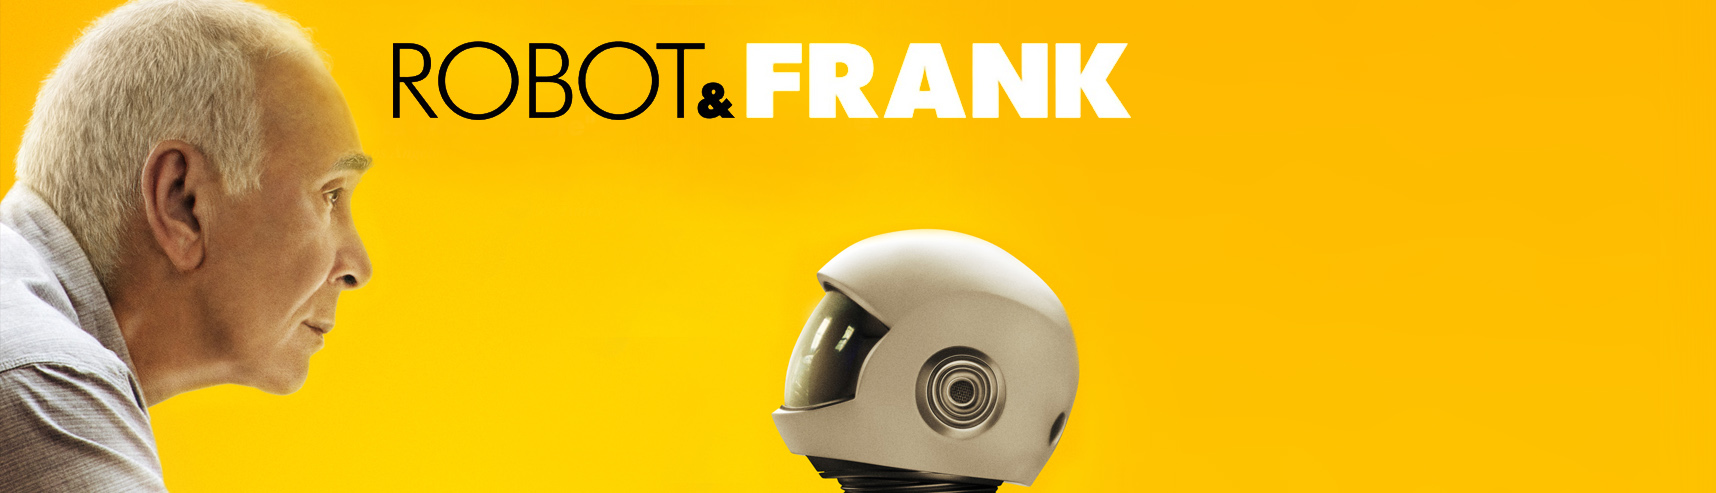 Robot and Frank: